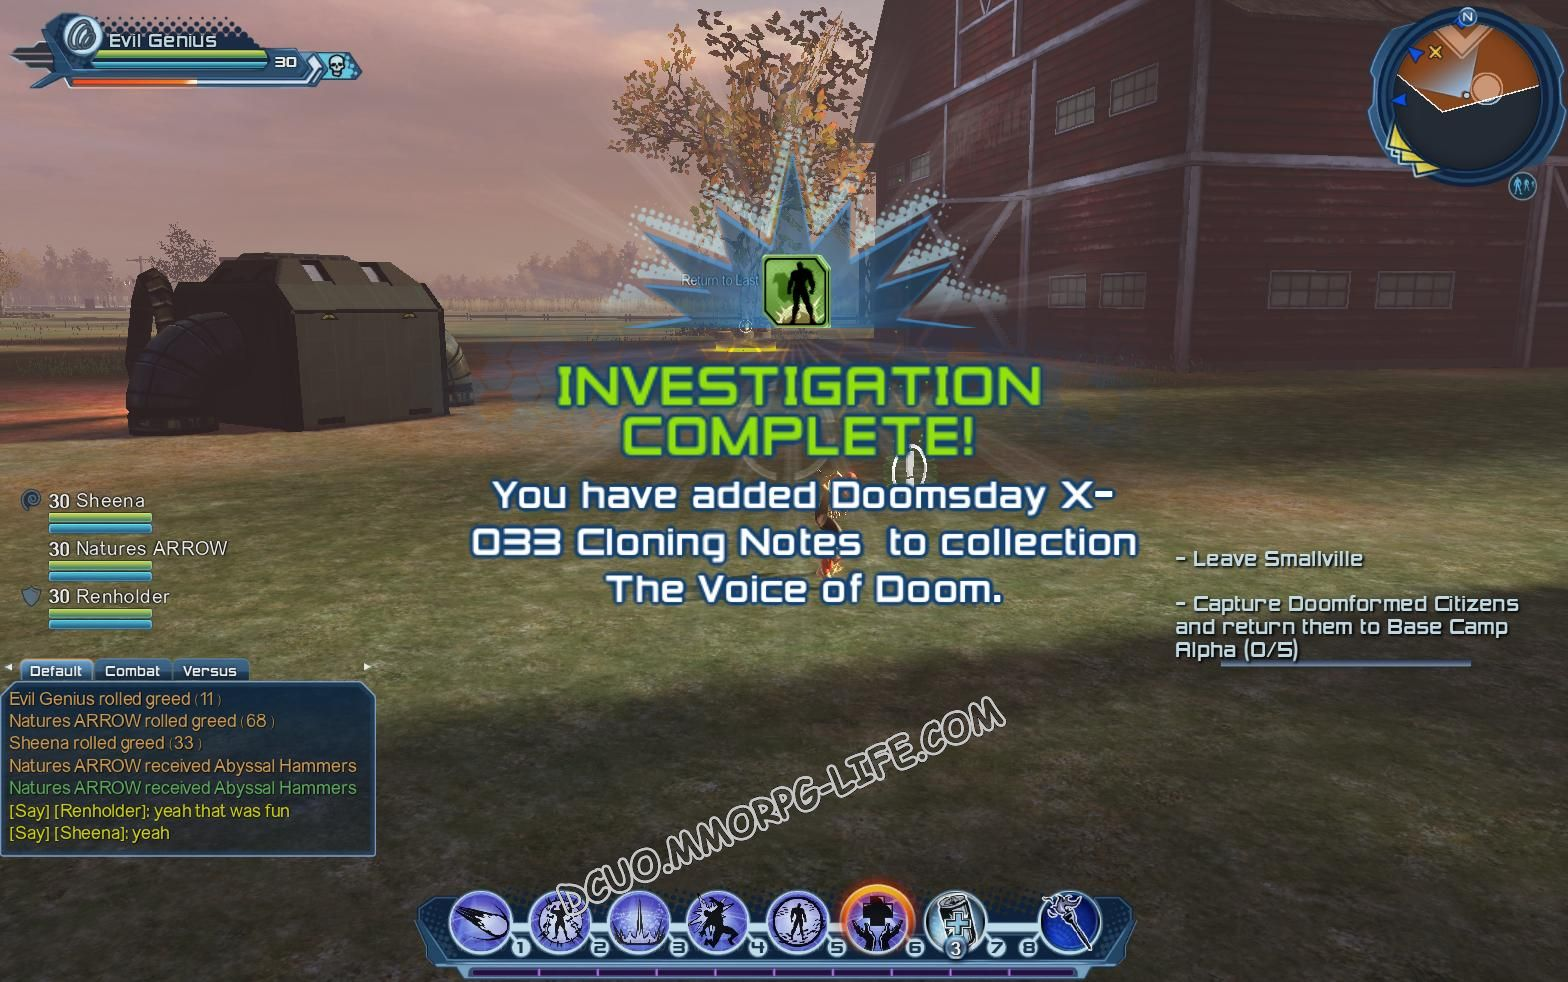 Investigation: The Voice of Doom, step 4 Doomsday X - 033 Cloning Notes  image 1639 middle size